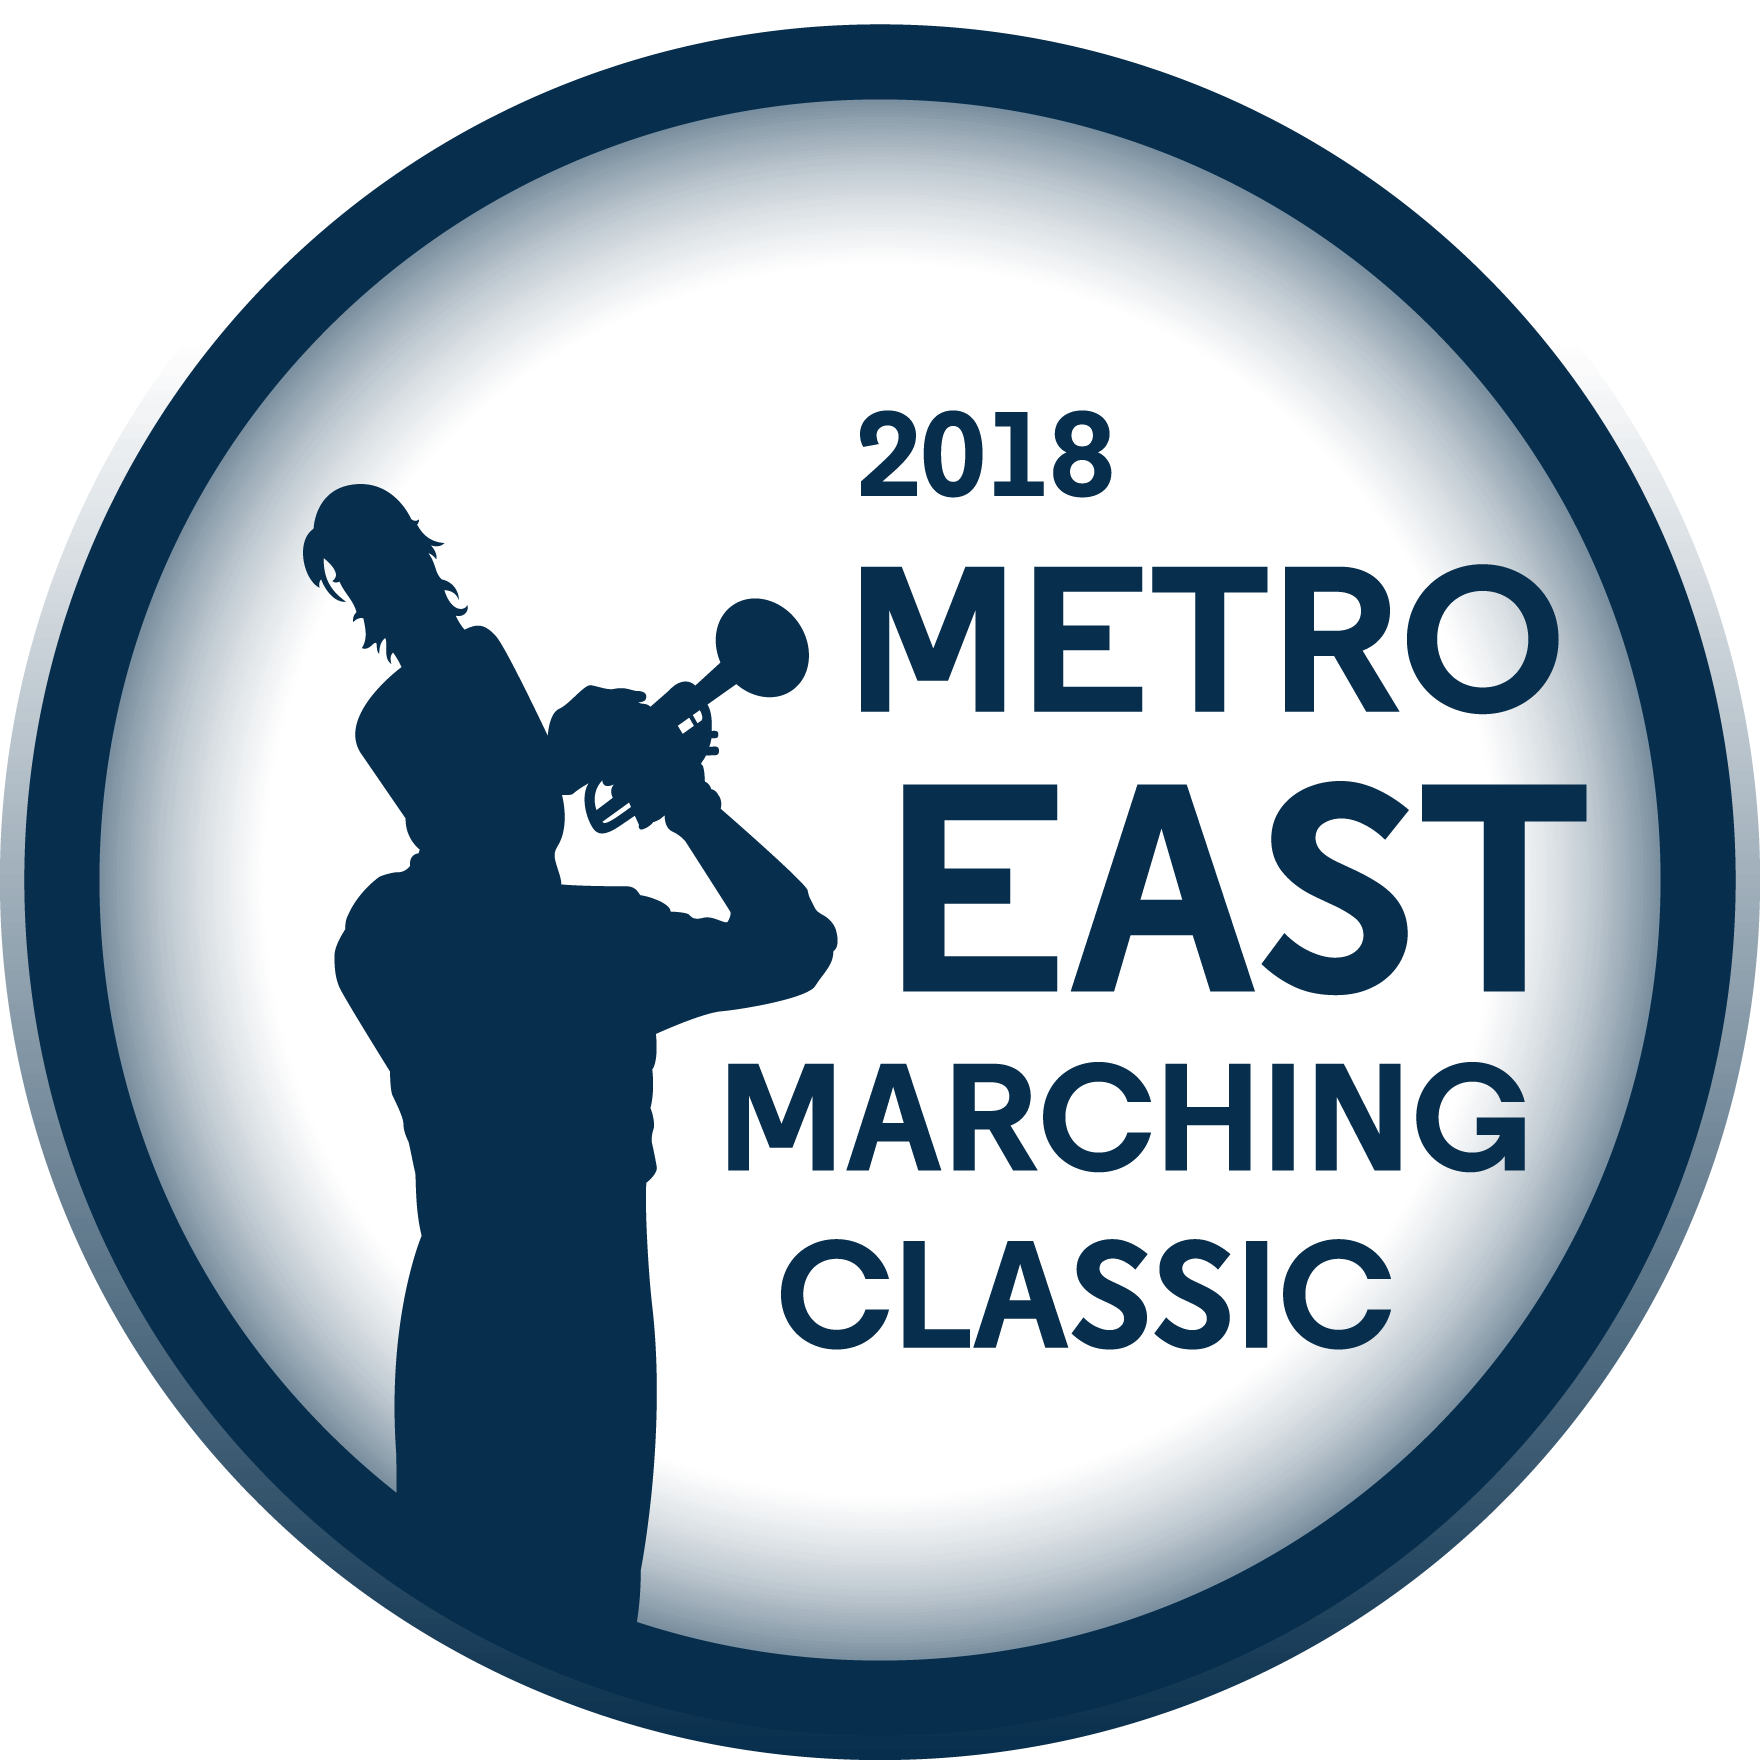 2018 Metro East Marching Classic Hosted by Ofallon Township High School Marching Panthers